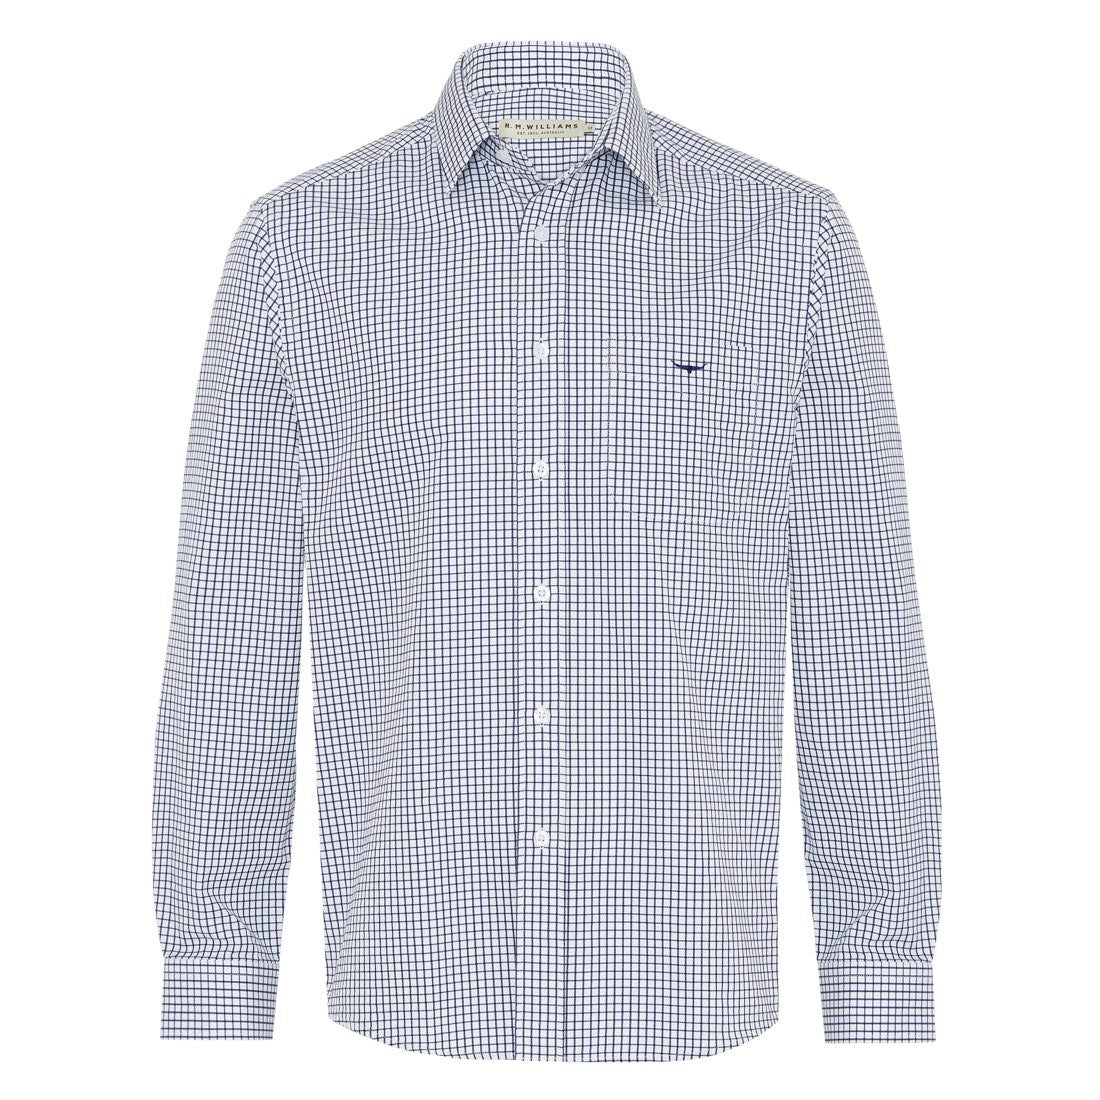 R.M.Williams Collins Shirt Navy/White Small Check Regular Fit